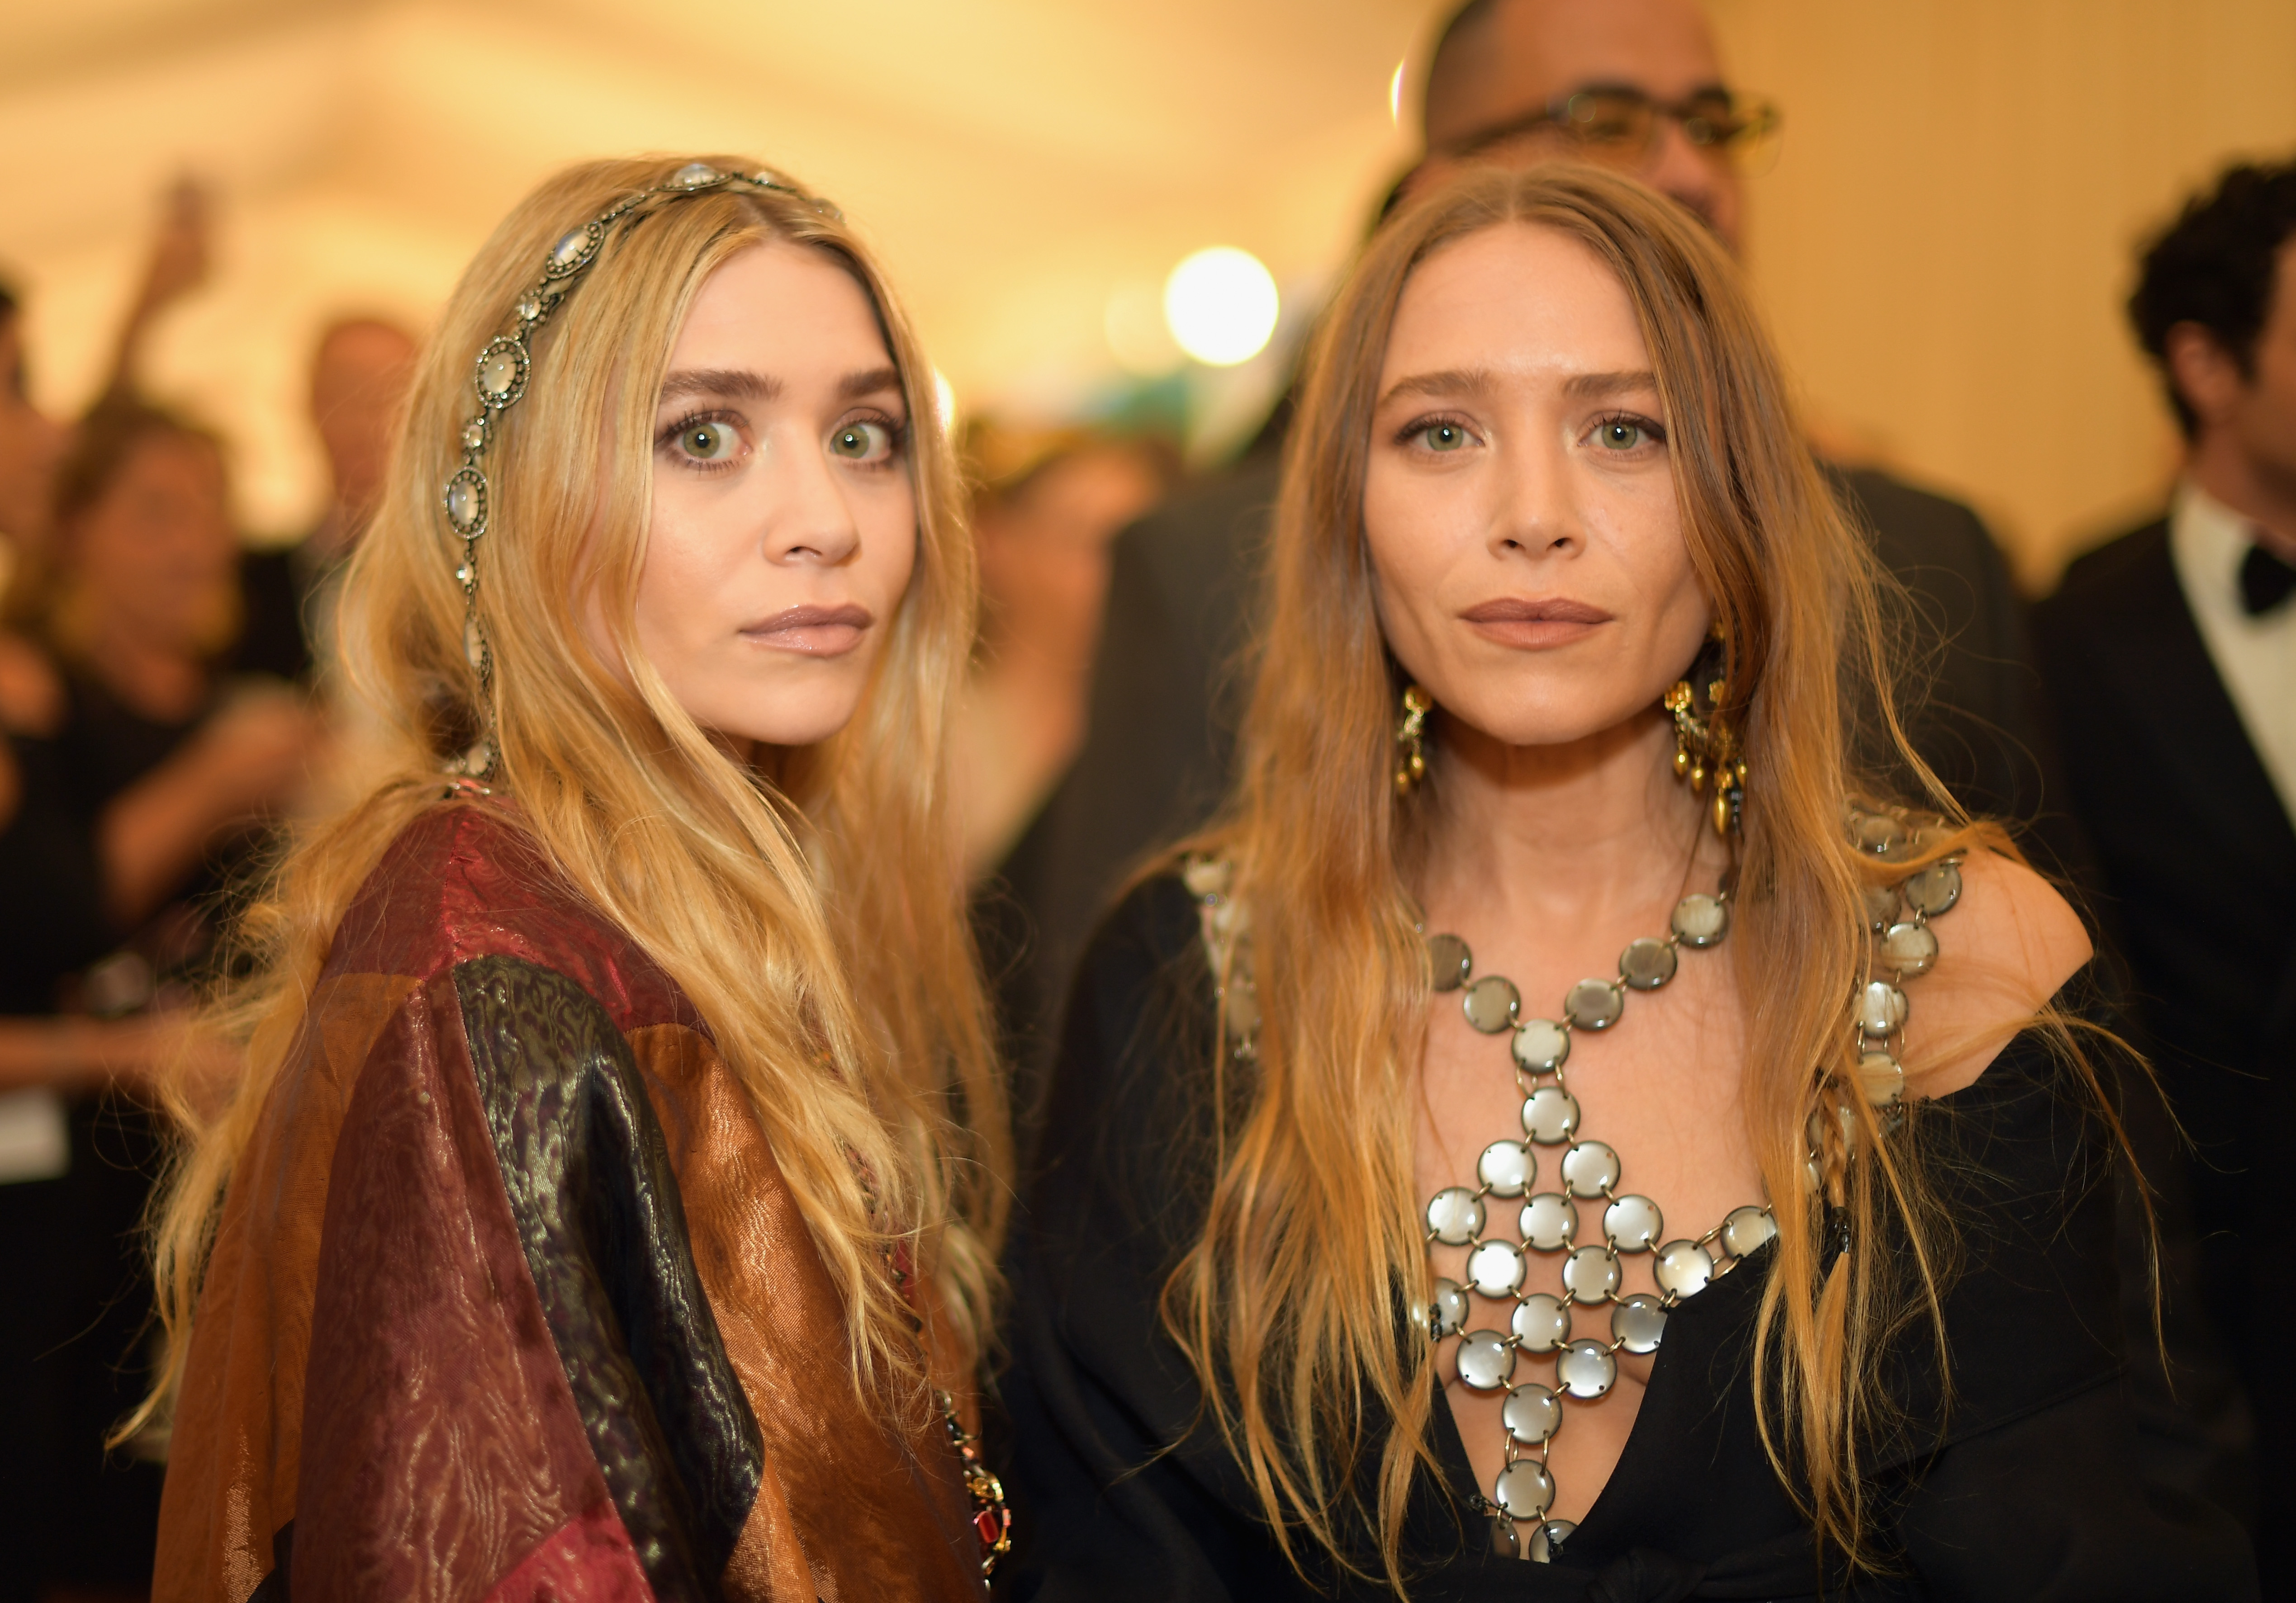 Ashley Olsen and Mary-Kate Olsen attend the Met Gala on May 7, 2018 in New York City.  (Photo by Matt Winkelmeyer/MG18/Getty Images for The Met Museum/Vogue)